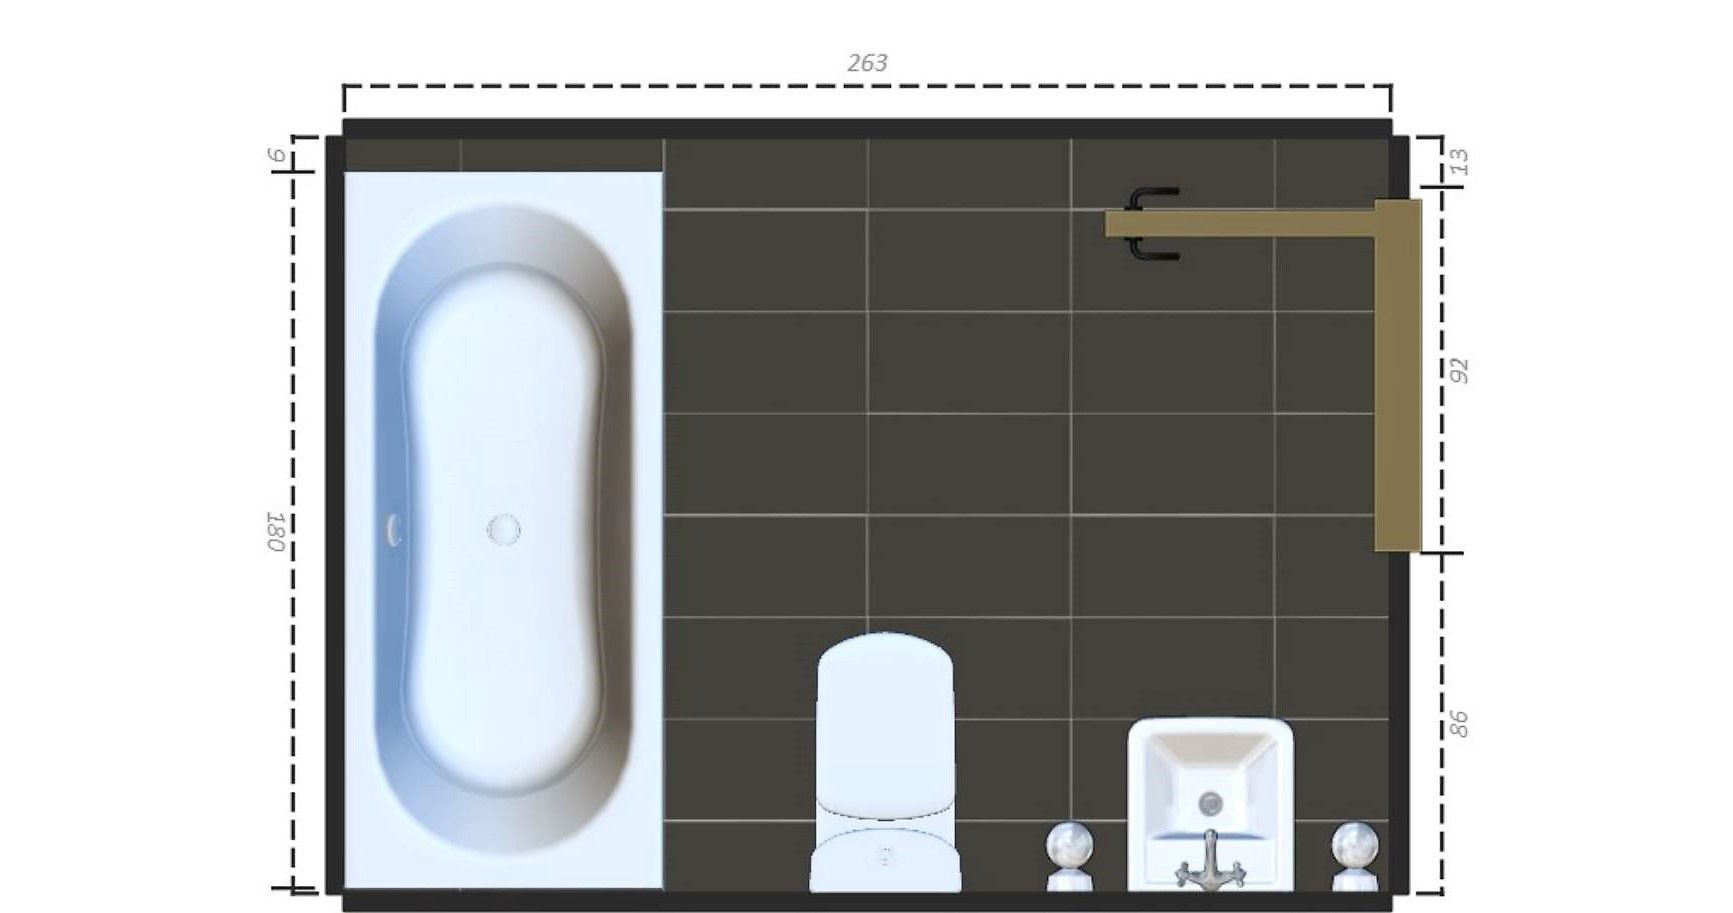 6x9 bathroom layout - 6x9 Bathroom Layout 40